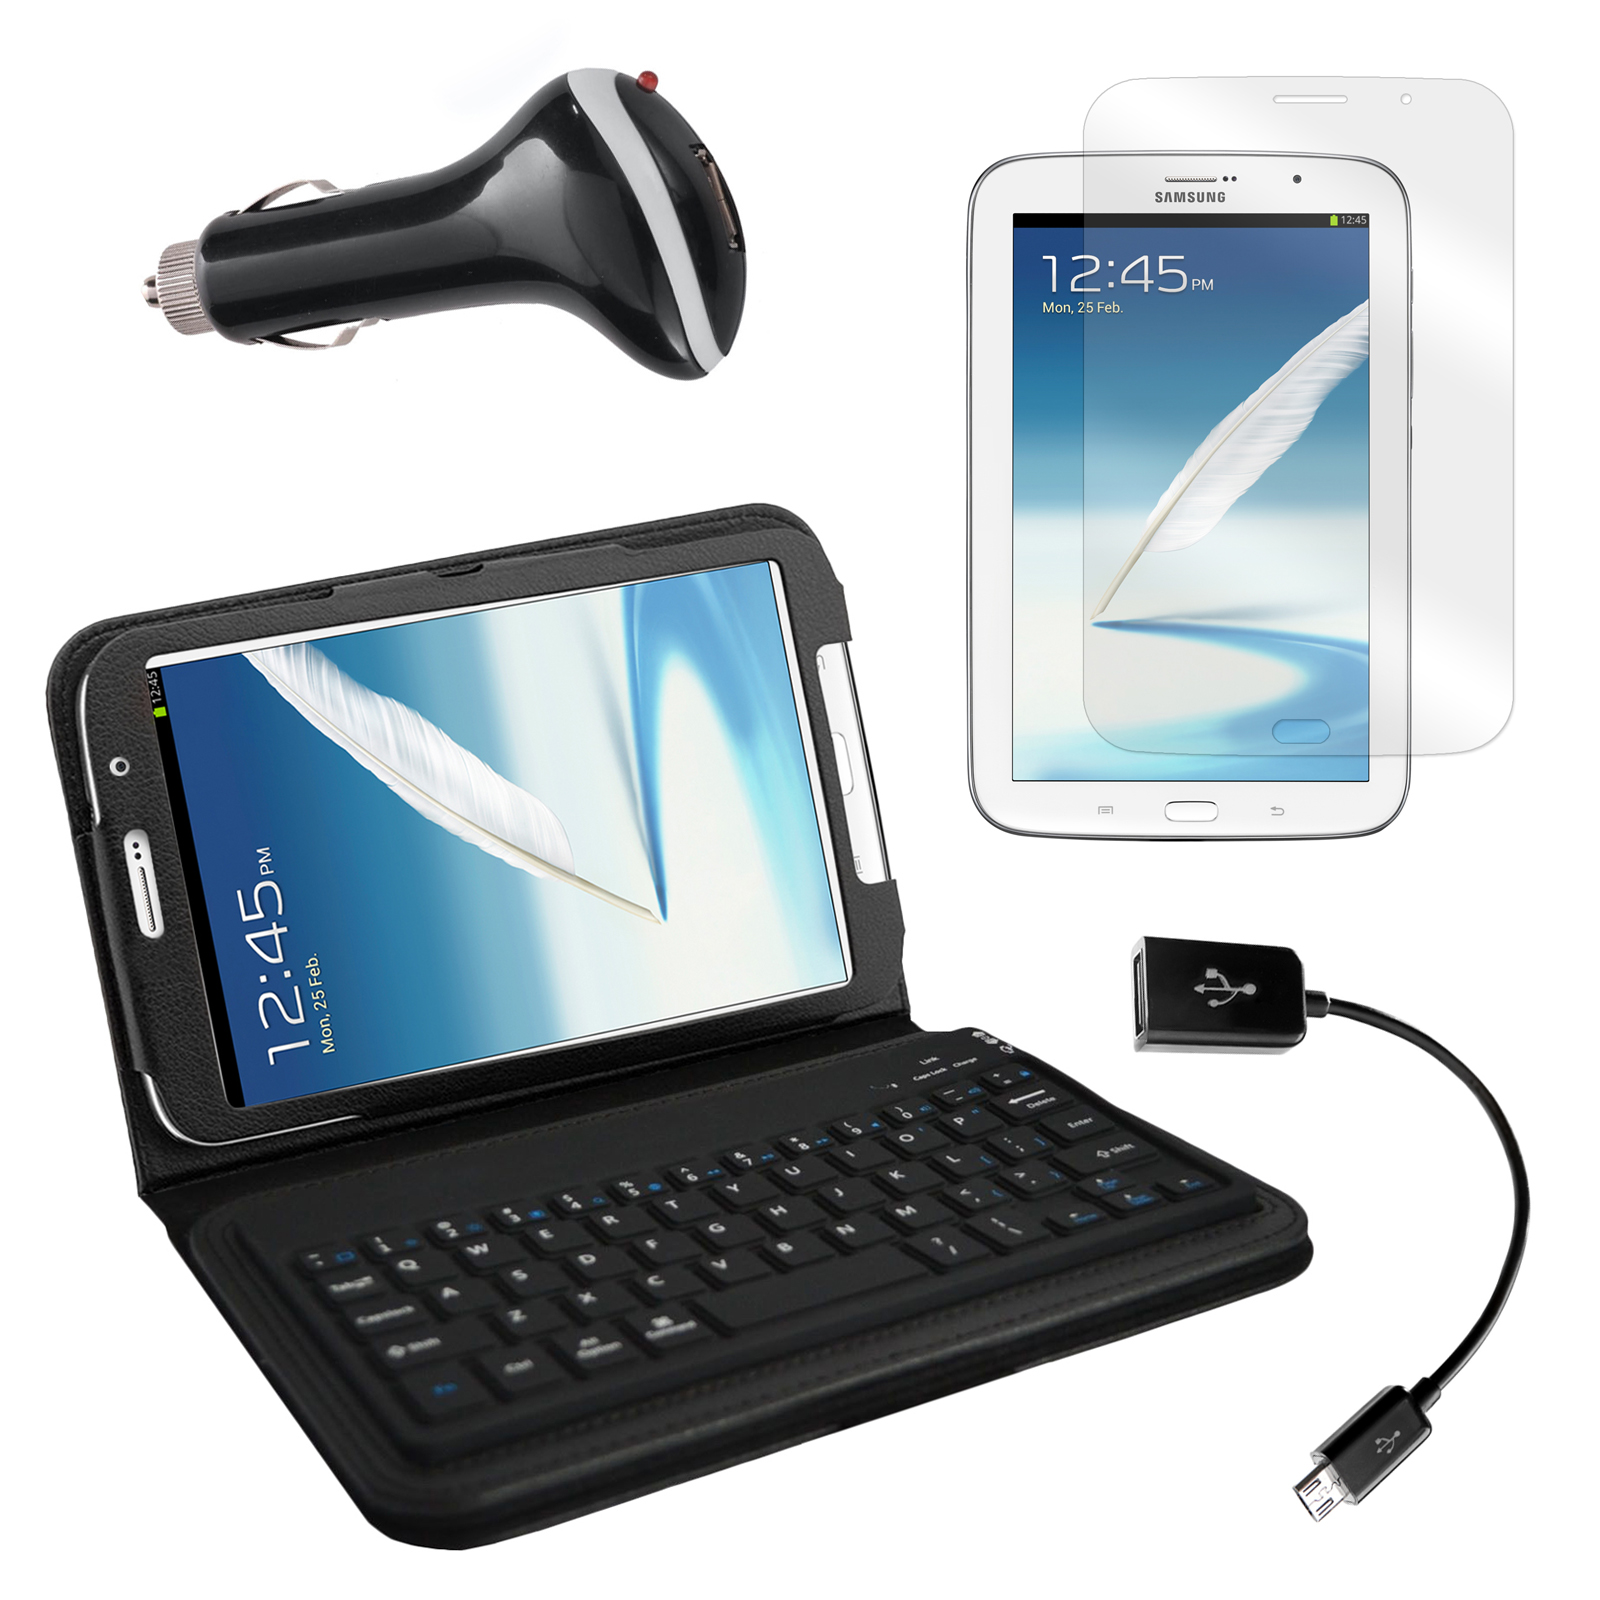 "Bluetooth Keyboard Folio with Screen Protector, OTG Cable, and Car Charger for Samsung Galaxy Note 8"" Tablet"